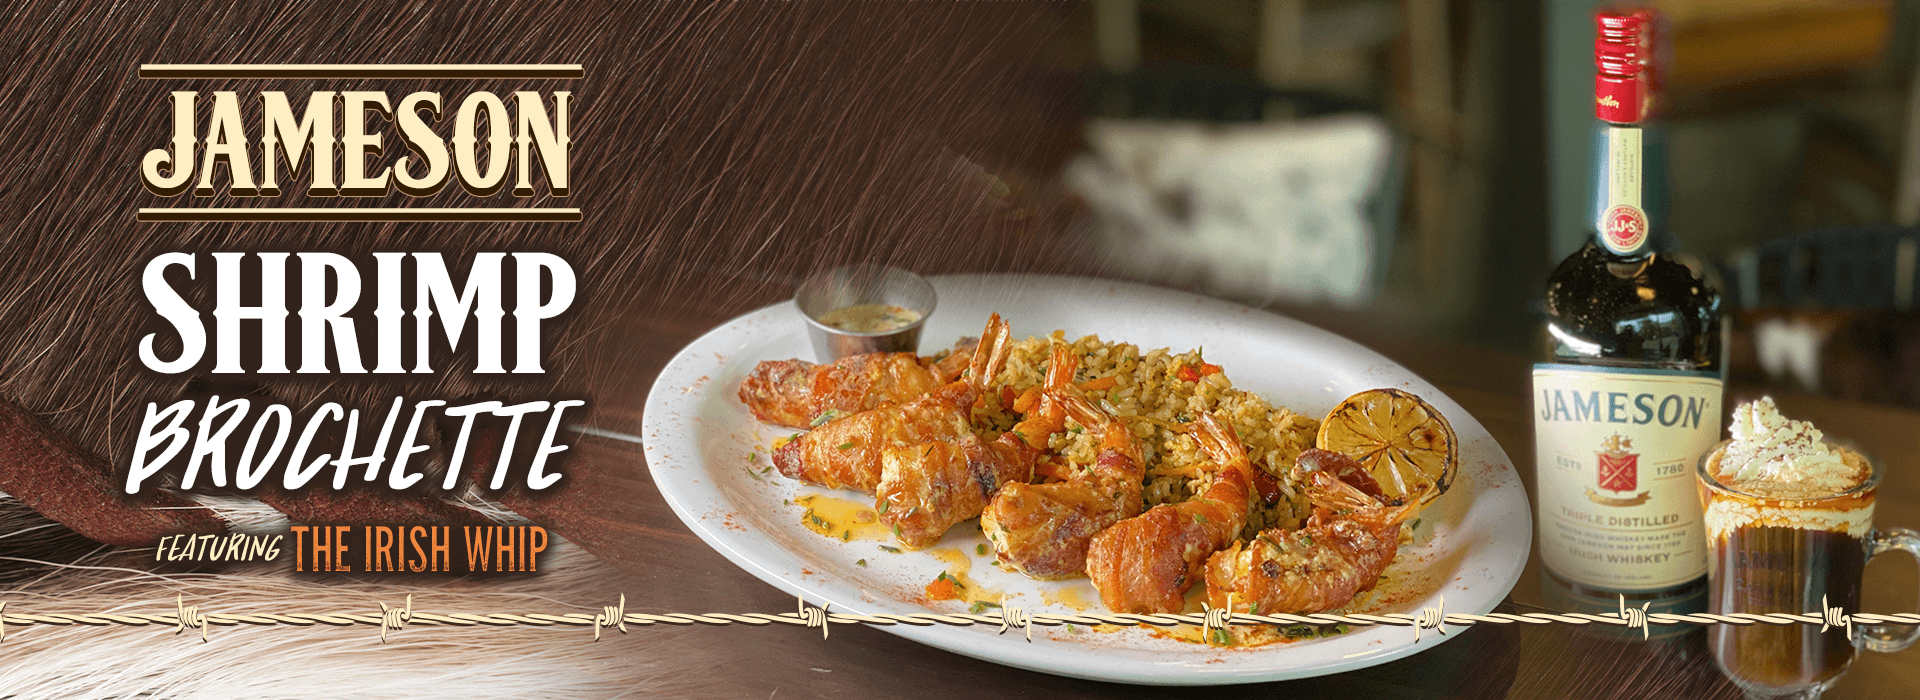 Jameson Shrimp Brochette web banner